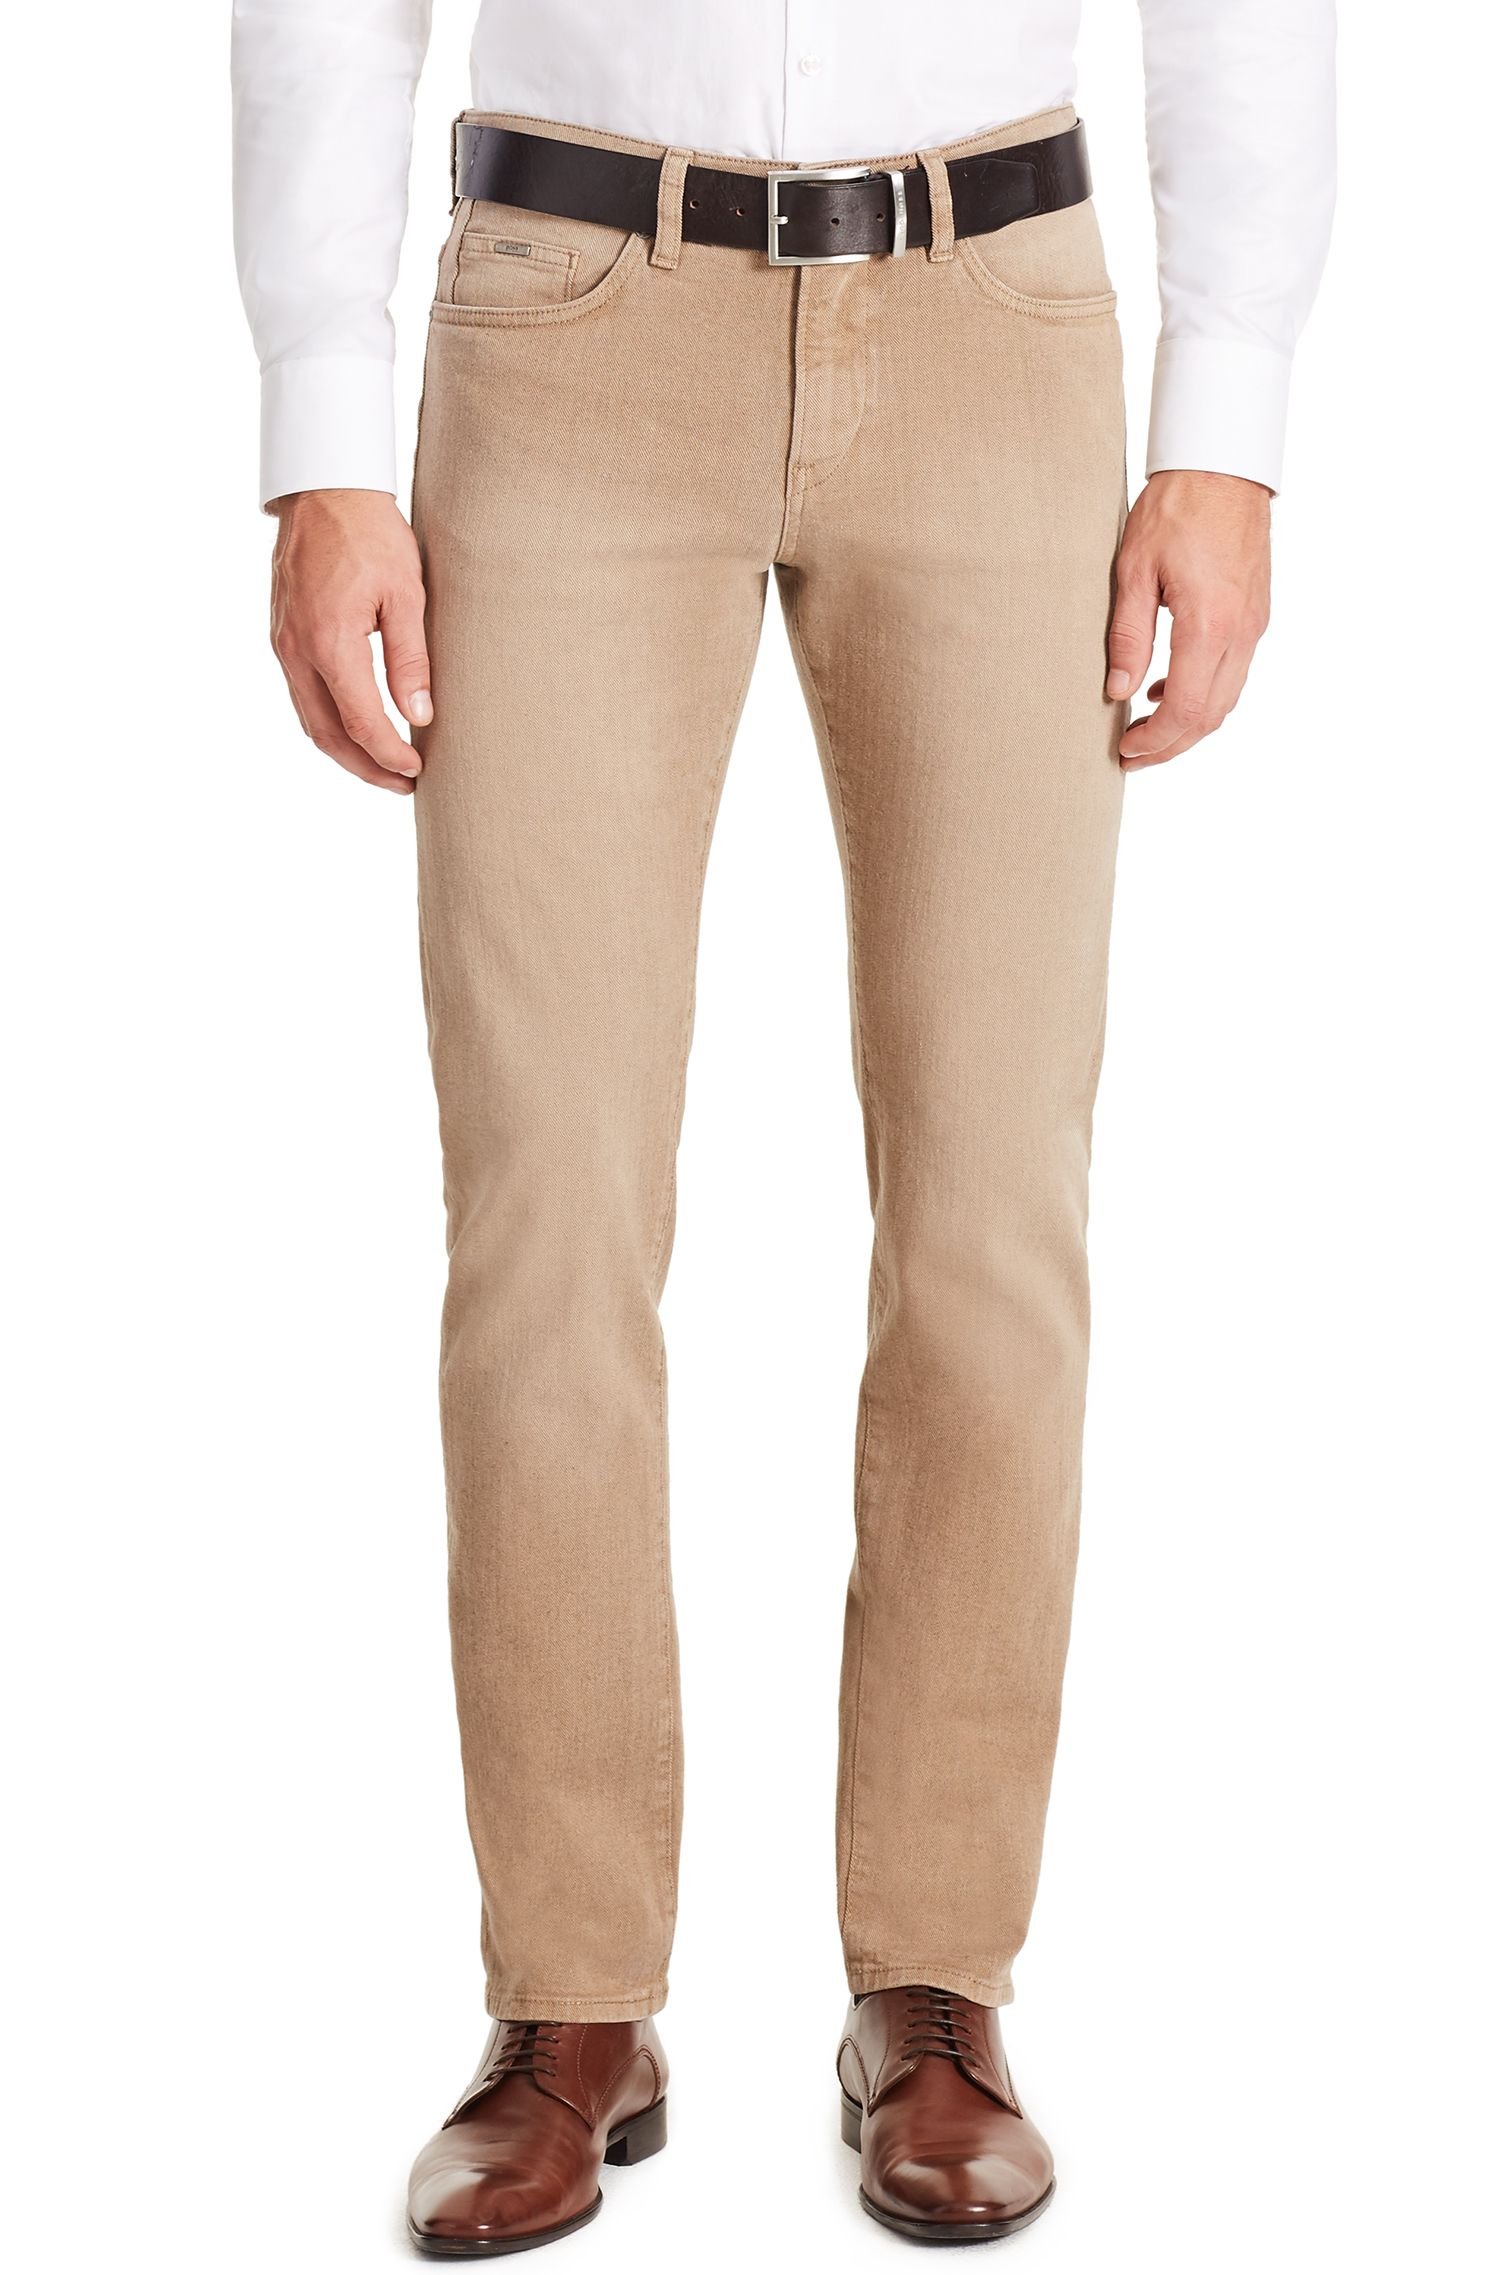 10.7 oz Italian Stretch Cotton Jeans, Slim Fit | Delaware, Beige